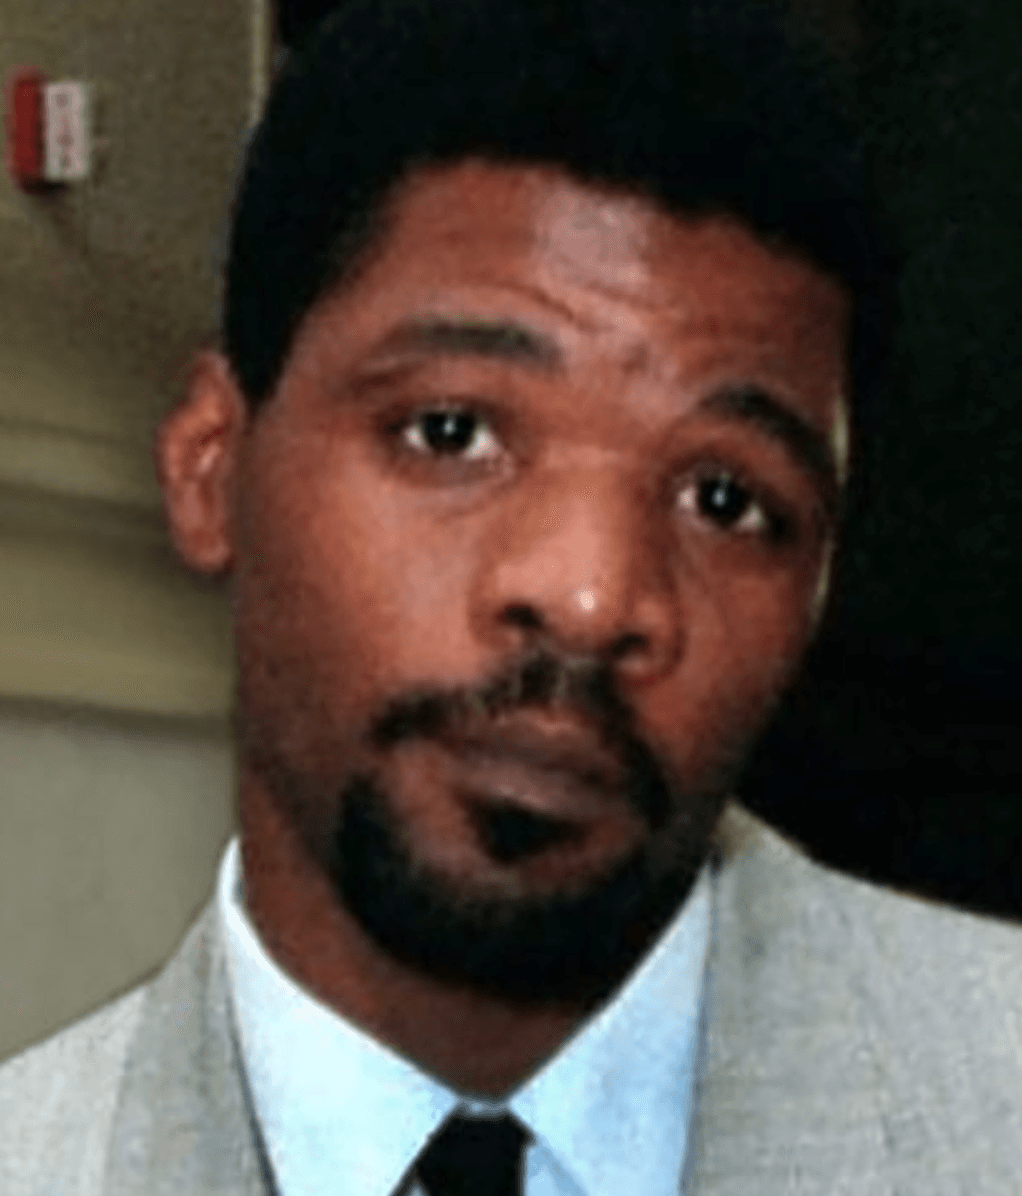 Forensic Testing Casts New Doubt on Guilt of Ledell Lee, Executed in Arkansas in 2017